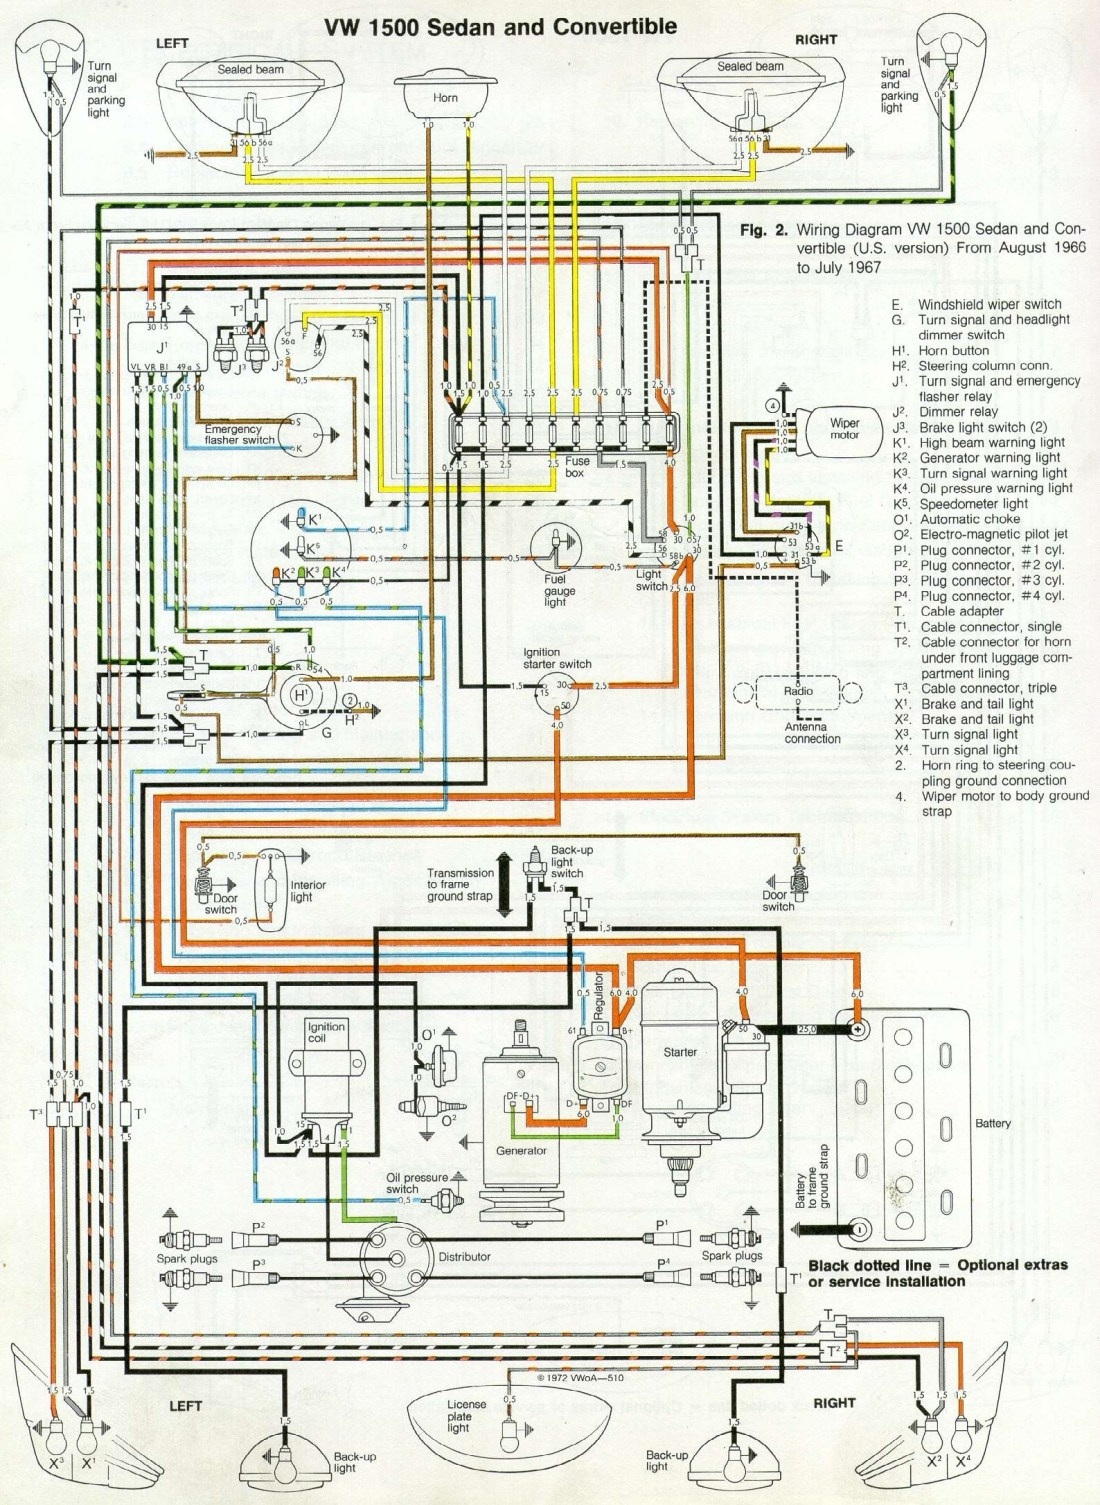 [DVZP_7254]   DIAGRAM] Wiring Diagram For 67 Vw Bug FULL Version HD Quality Vw Bug -  CPEWIRING.A-MON-IMAGE.FR | 2007 Vw New Beetle Wiper Motor Wiring Diagram |  | cpewiring.a-mon-image.fr